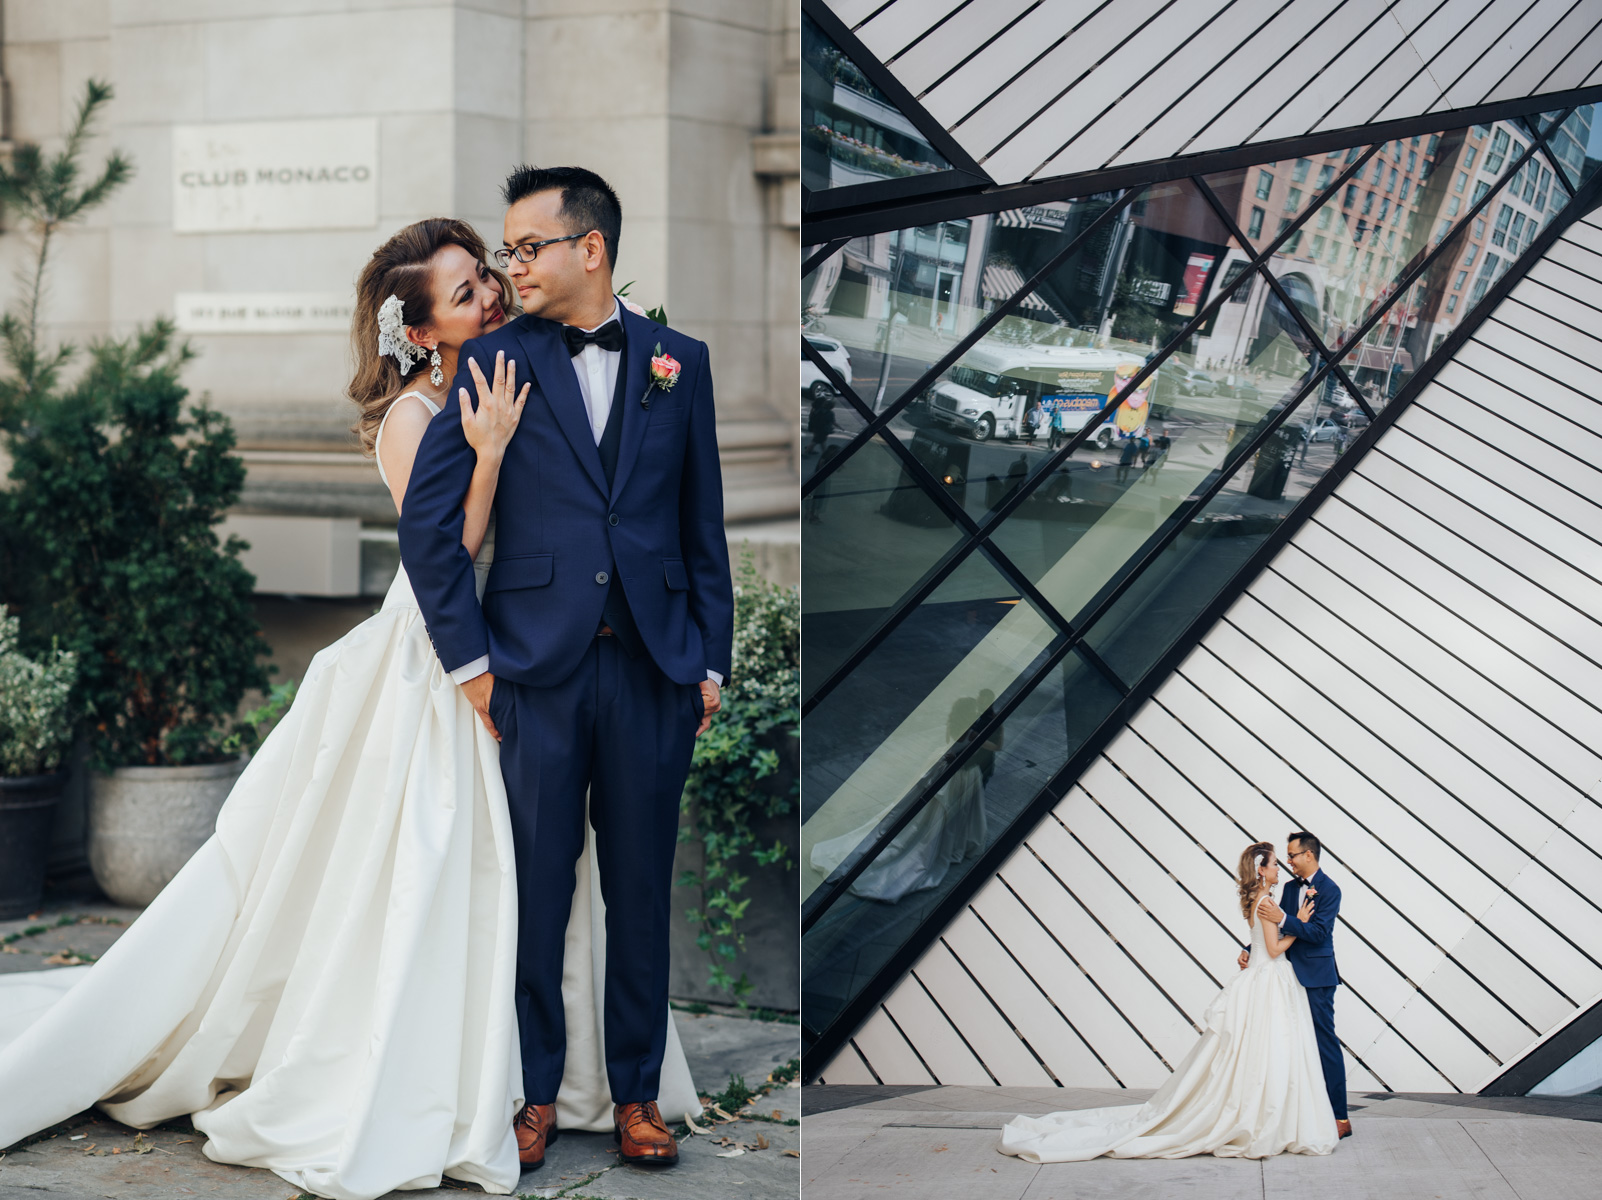 Bride and Groom's wedding photo at ROM